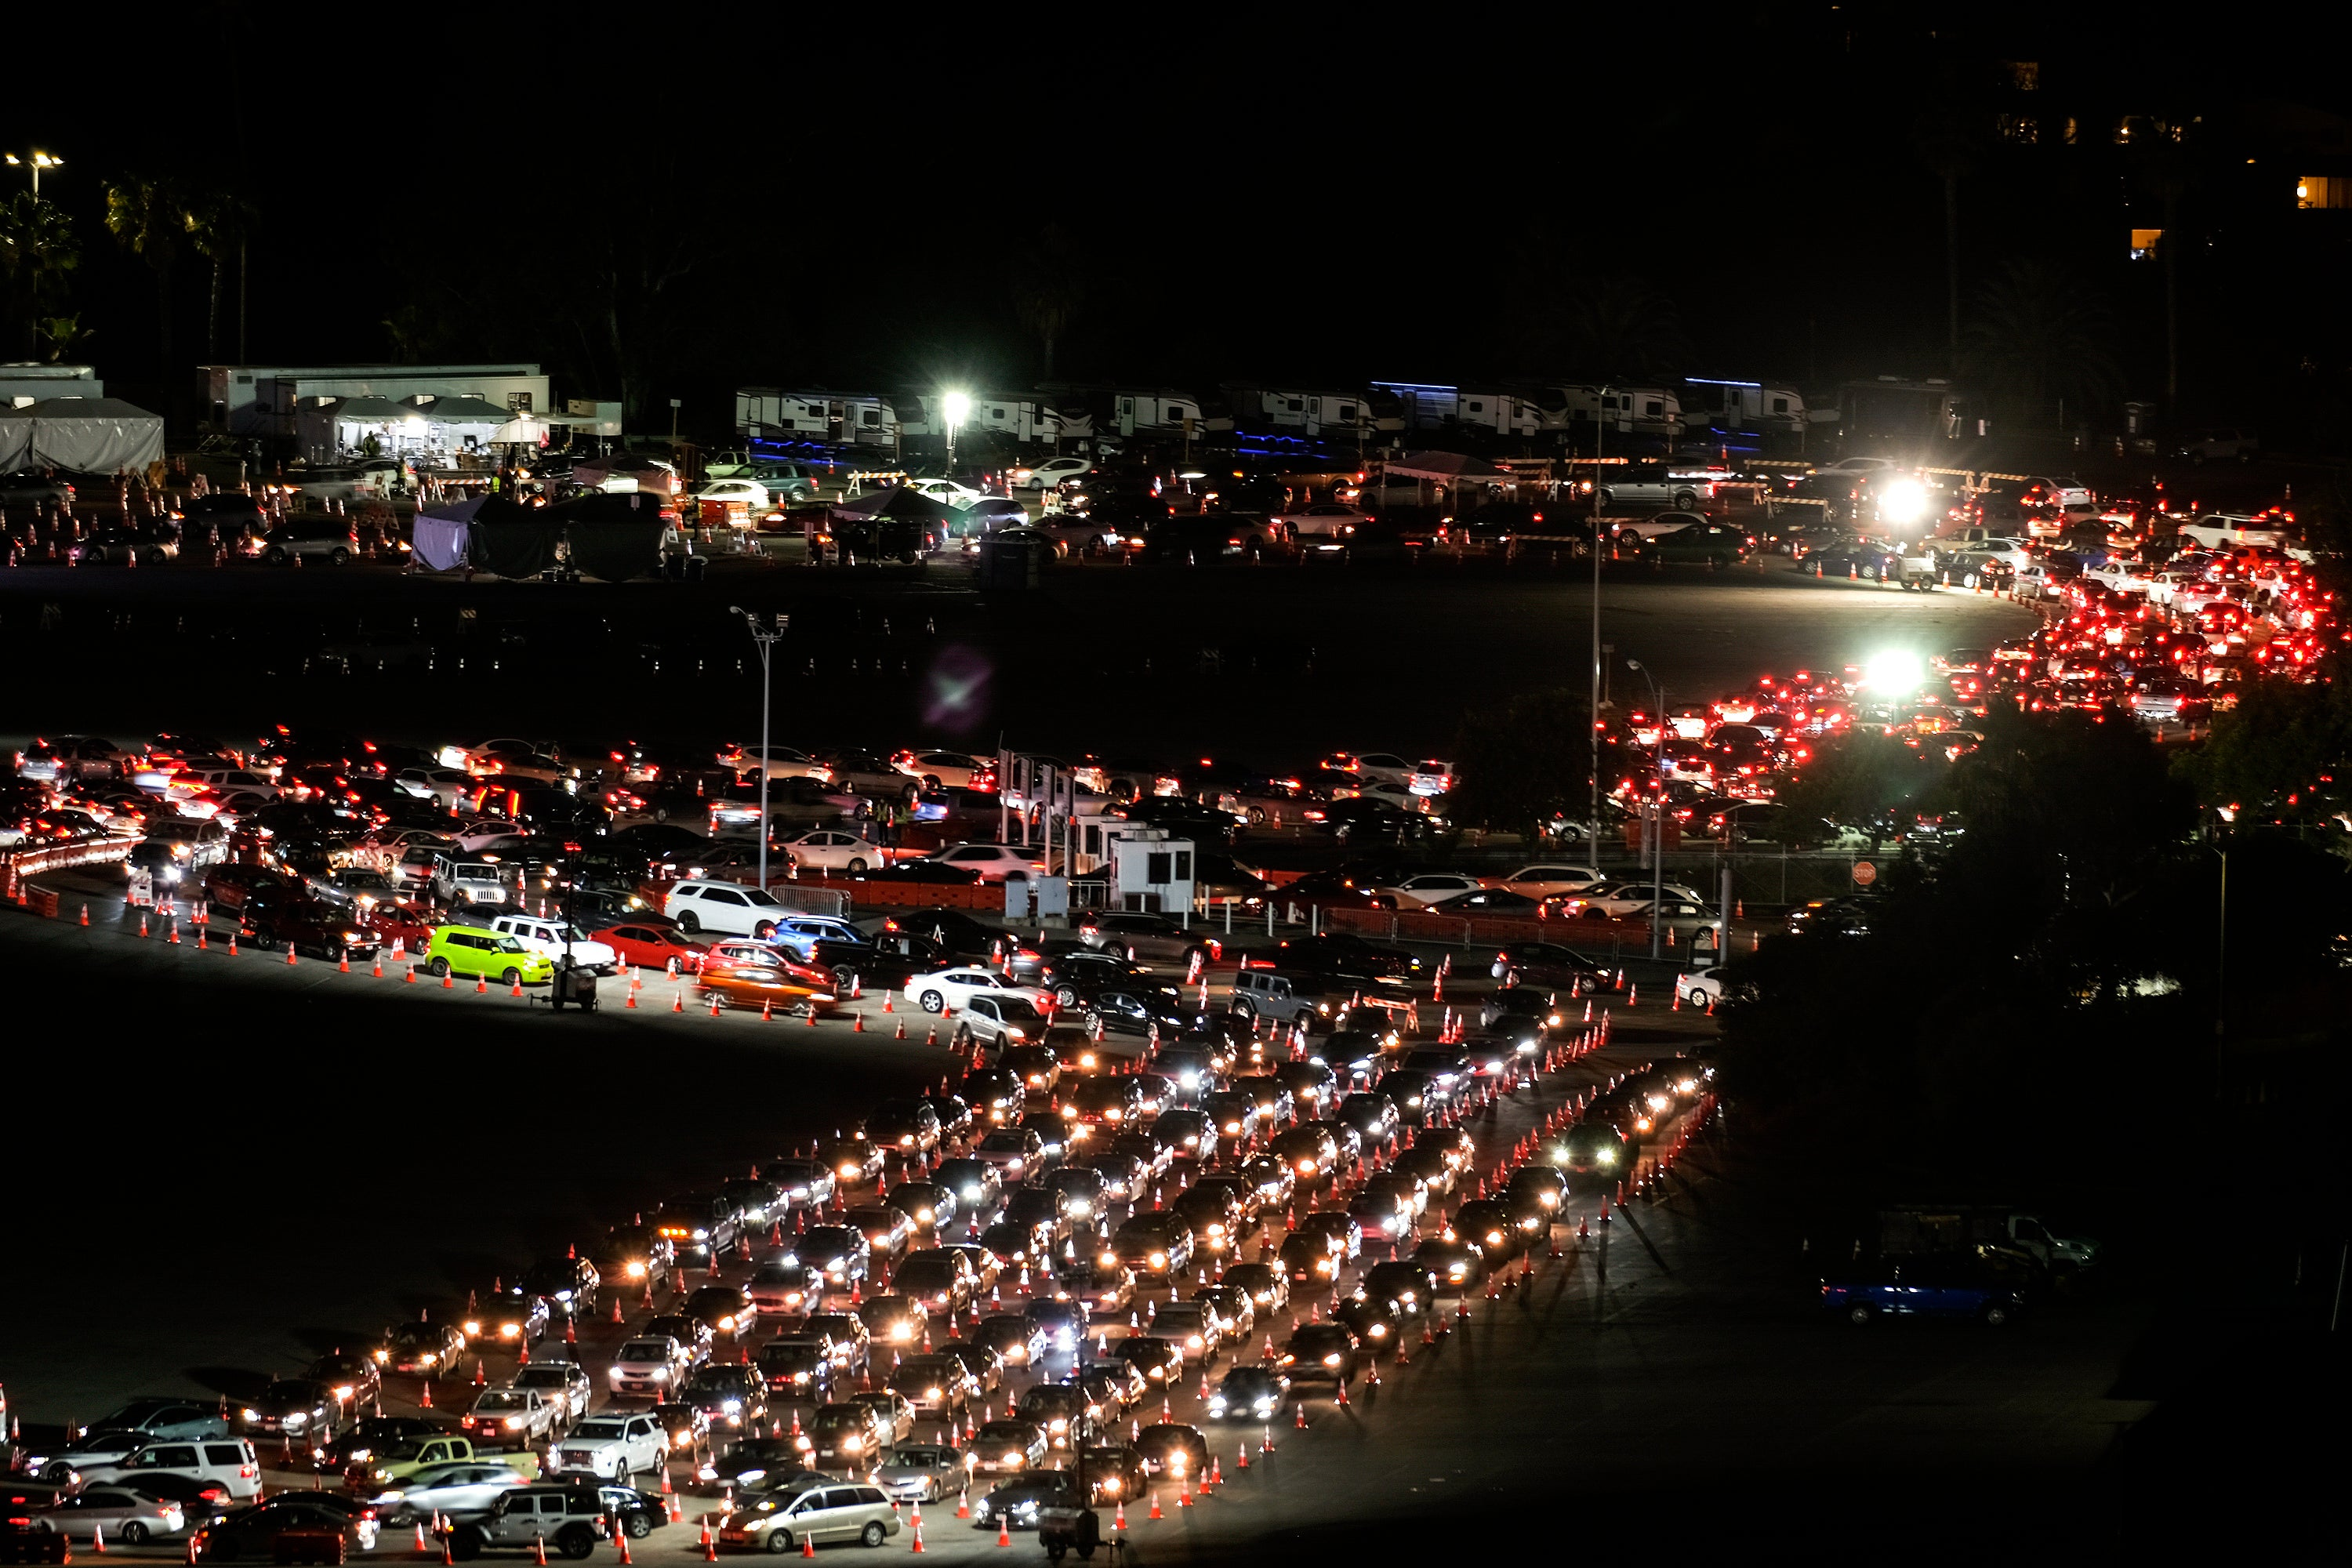 Motorists line up to take a coronavirus test in a parking lot at Dodger Stadium on Jan. 4.